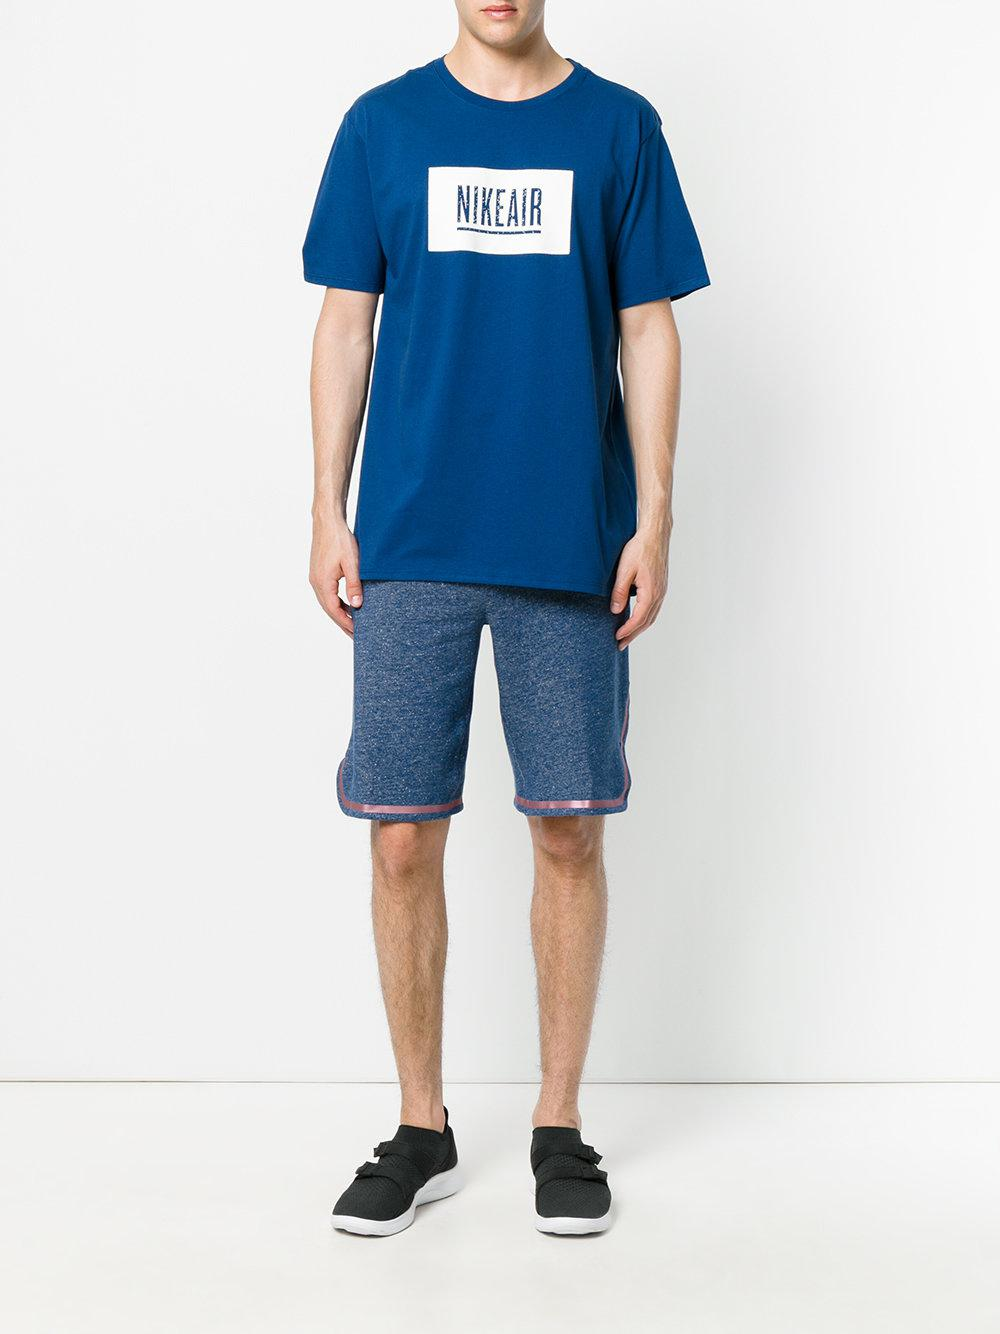 online store cdad4 b02be Lyst - Nike Lab X Pigalle Air T-shirt in Blue for Men